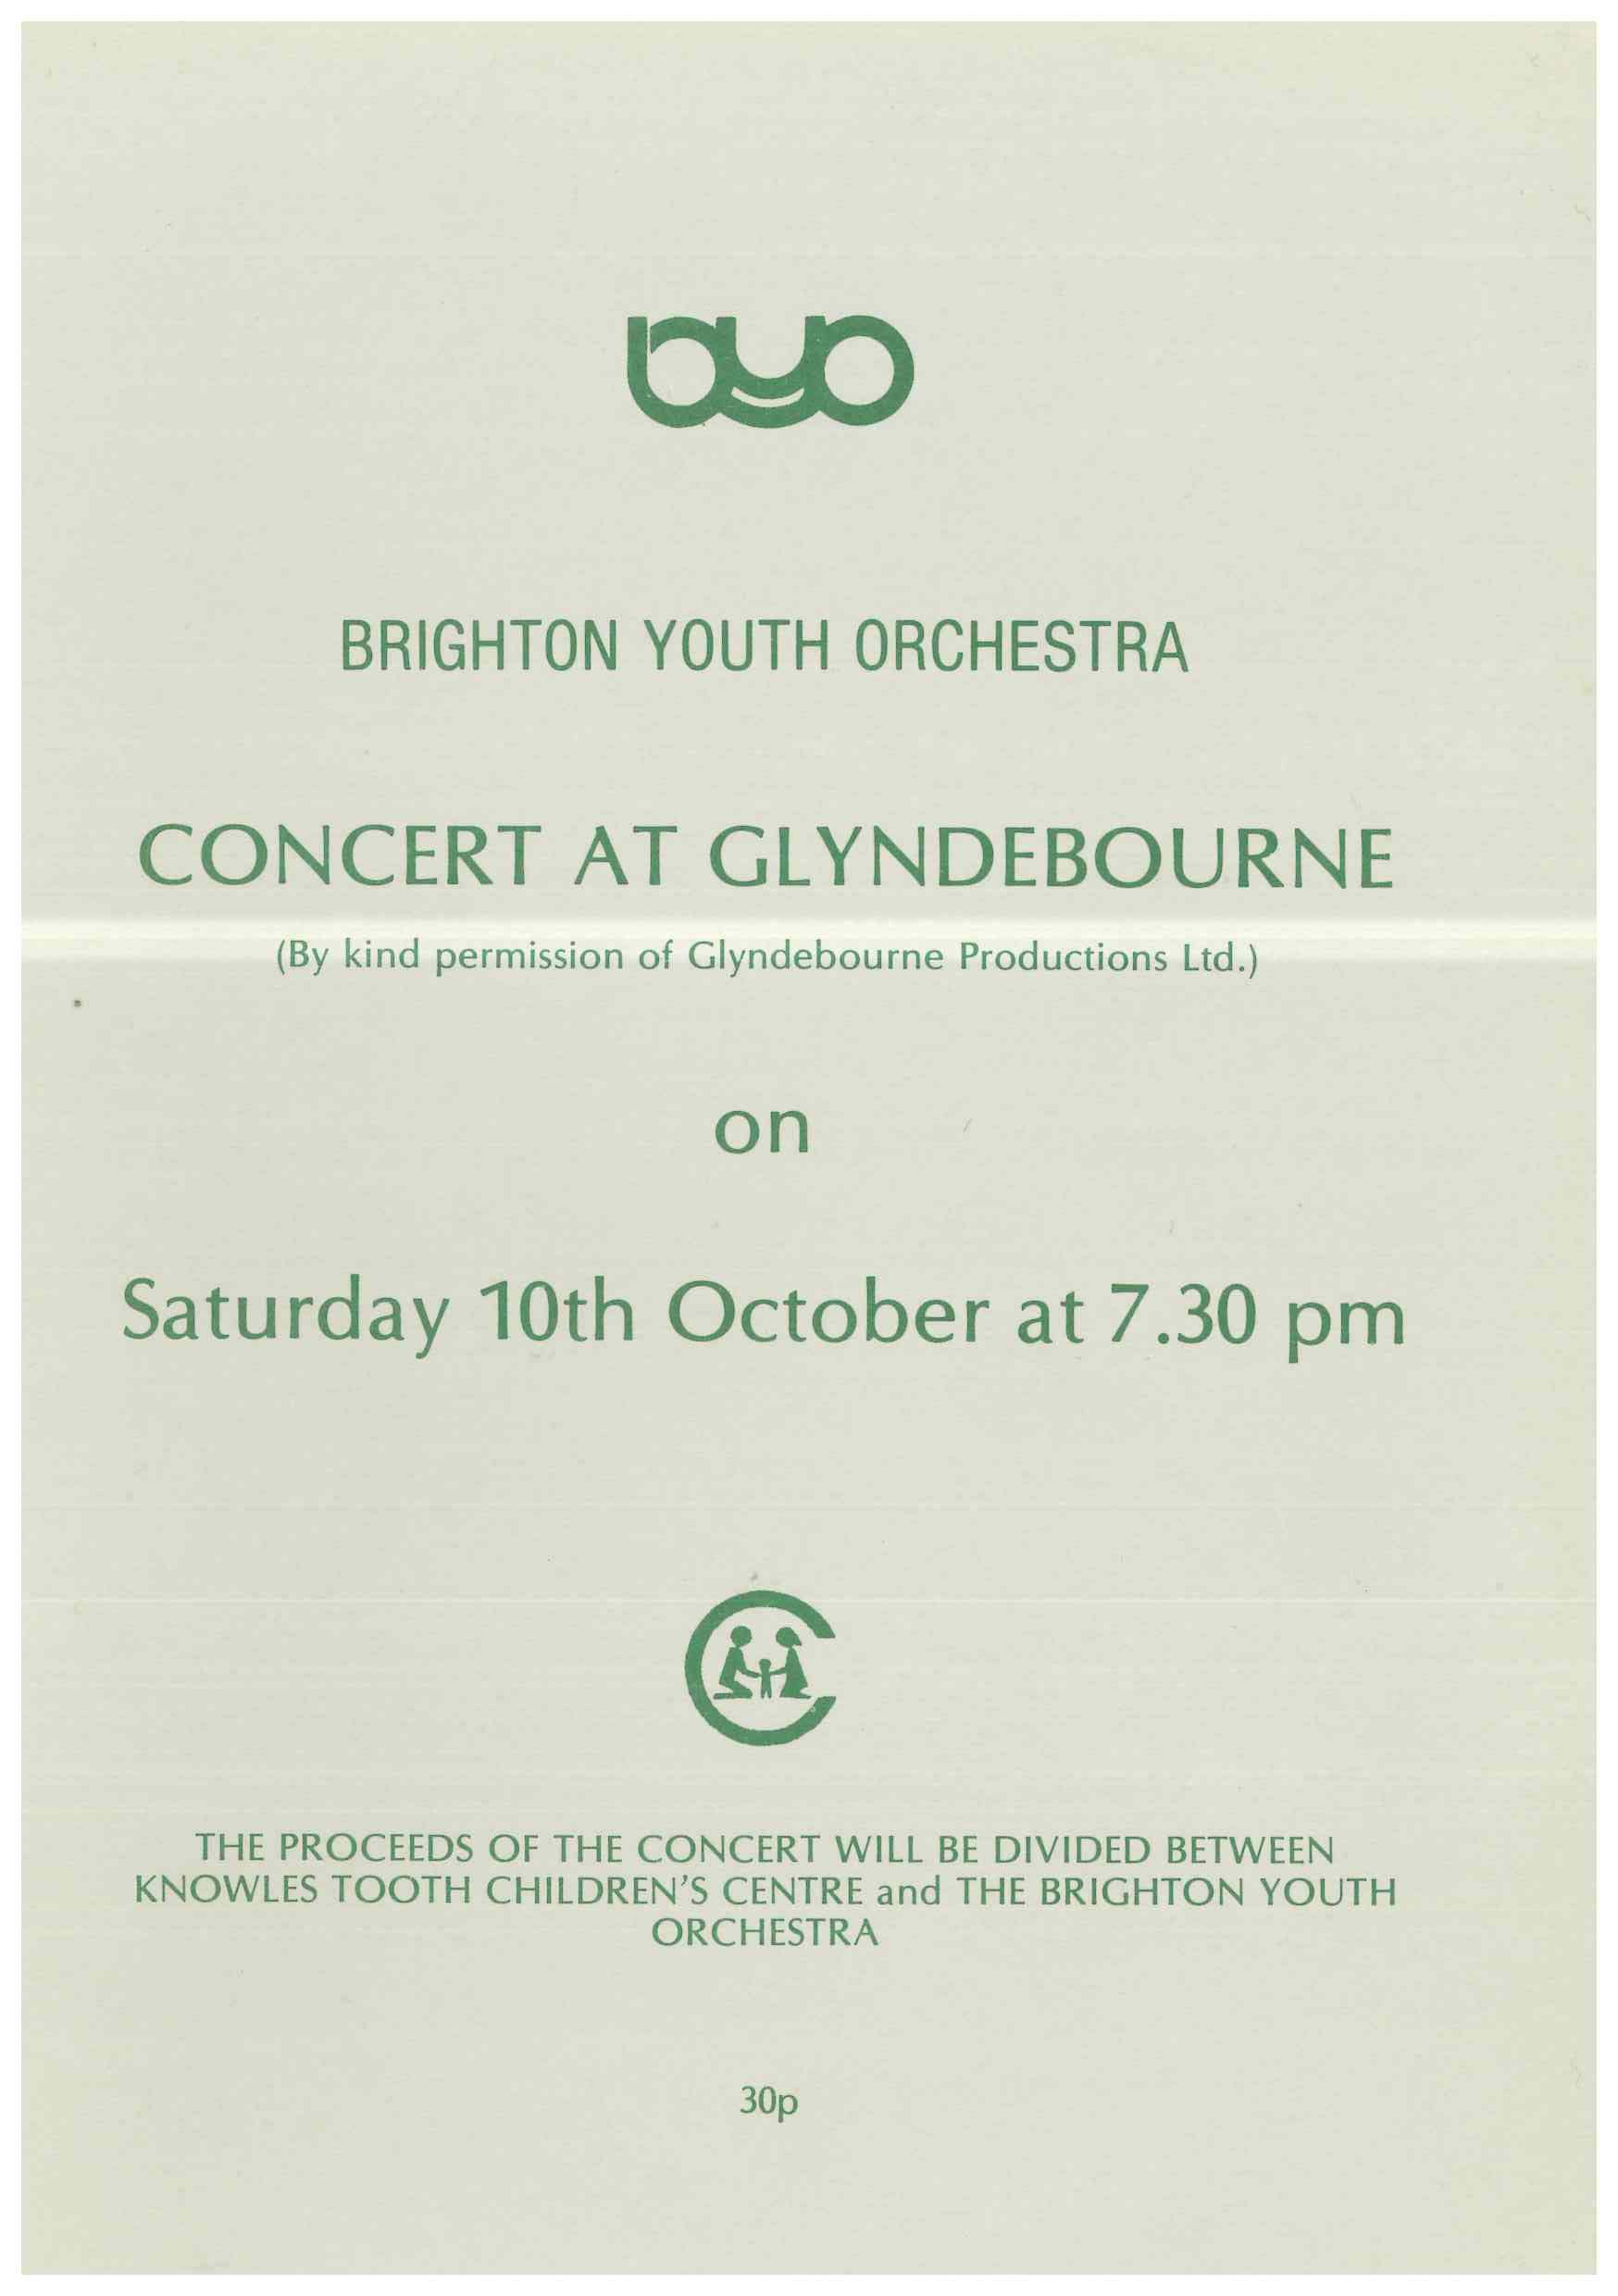 00100-BYO Glyndebourne, 10th October.jpg